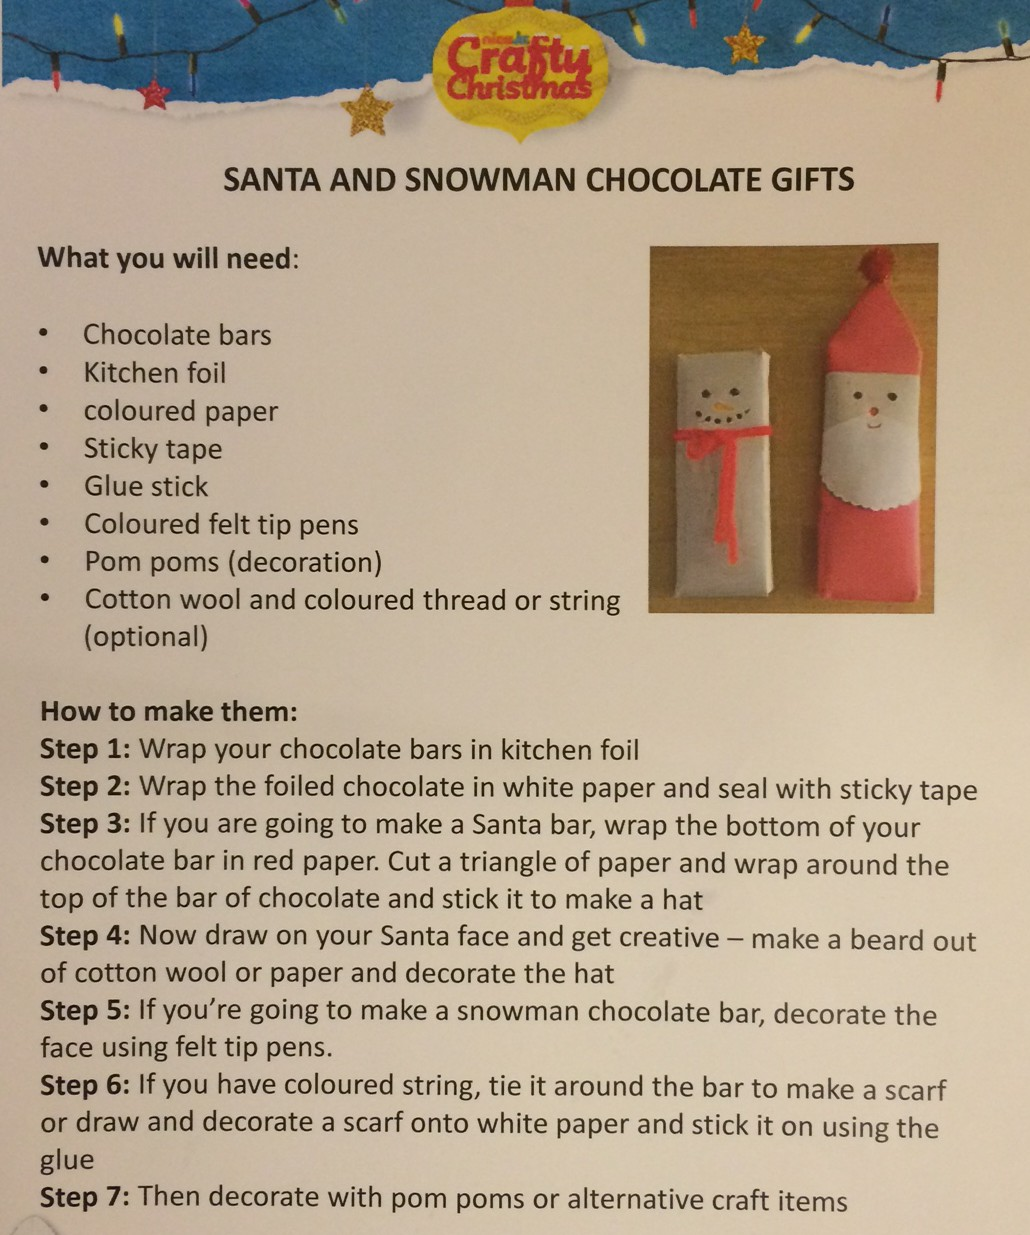 snowman and santa chocolate gifts - great idea!